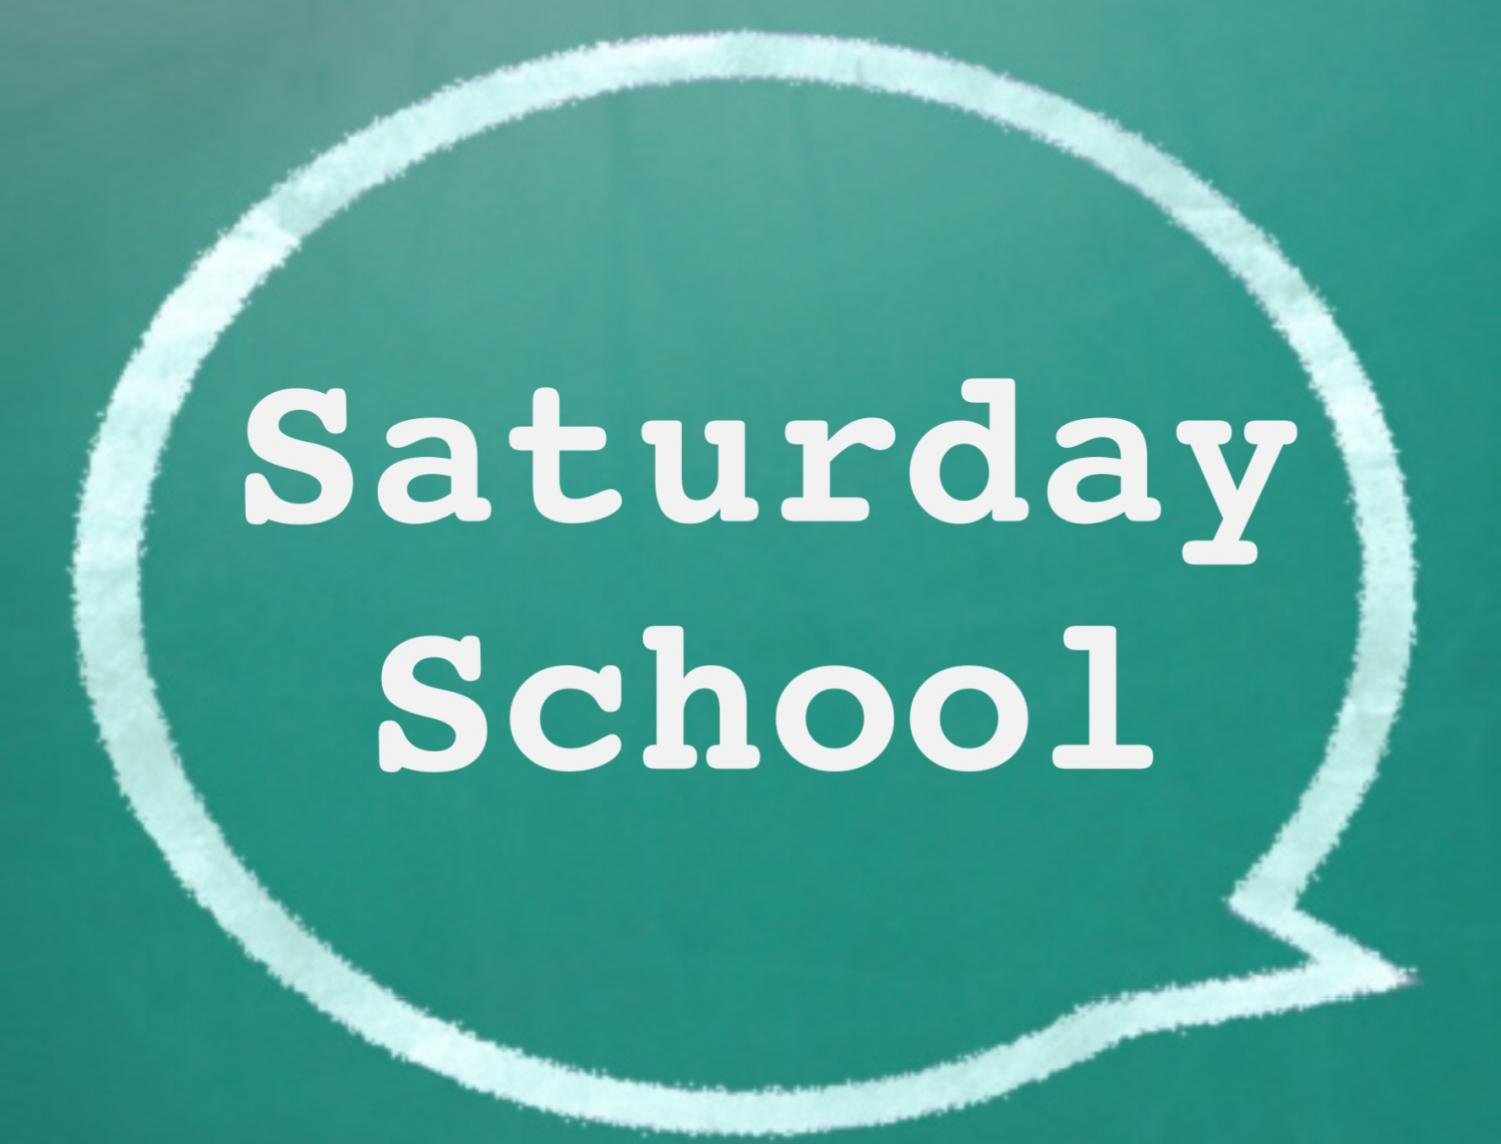 Saturday School Opportunity for Attendance Recovery